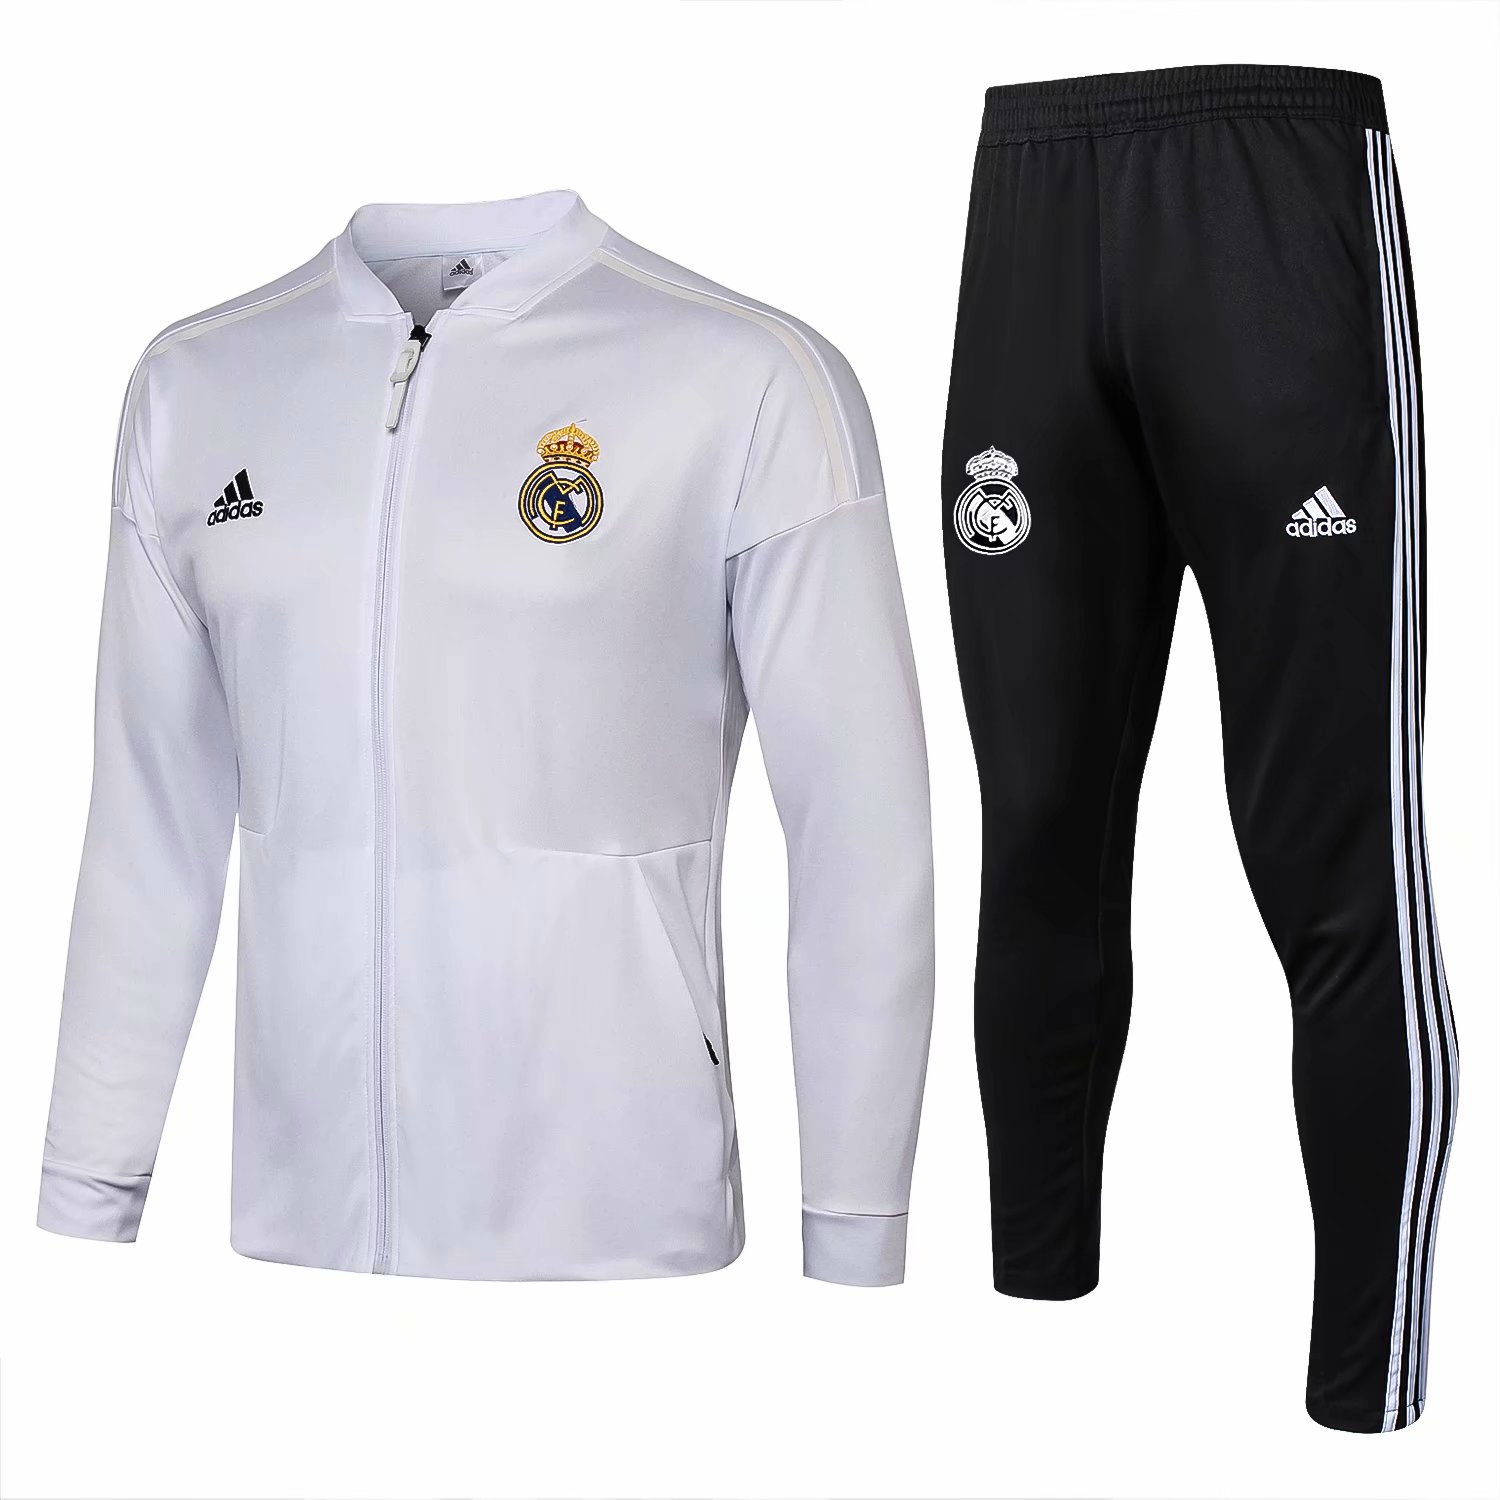 39764e1b2 US  37.8 - Real Madrid Adidas ZNE Jacket + Pants Training Suit Low Neck White  2018 19 - www.fcsoccerworld.com